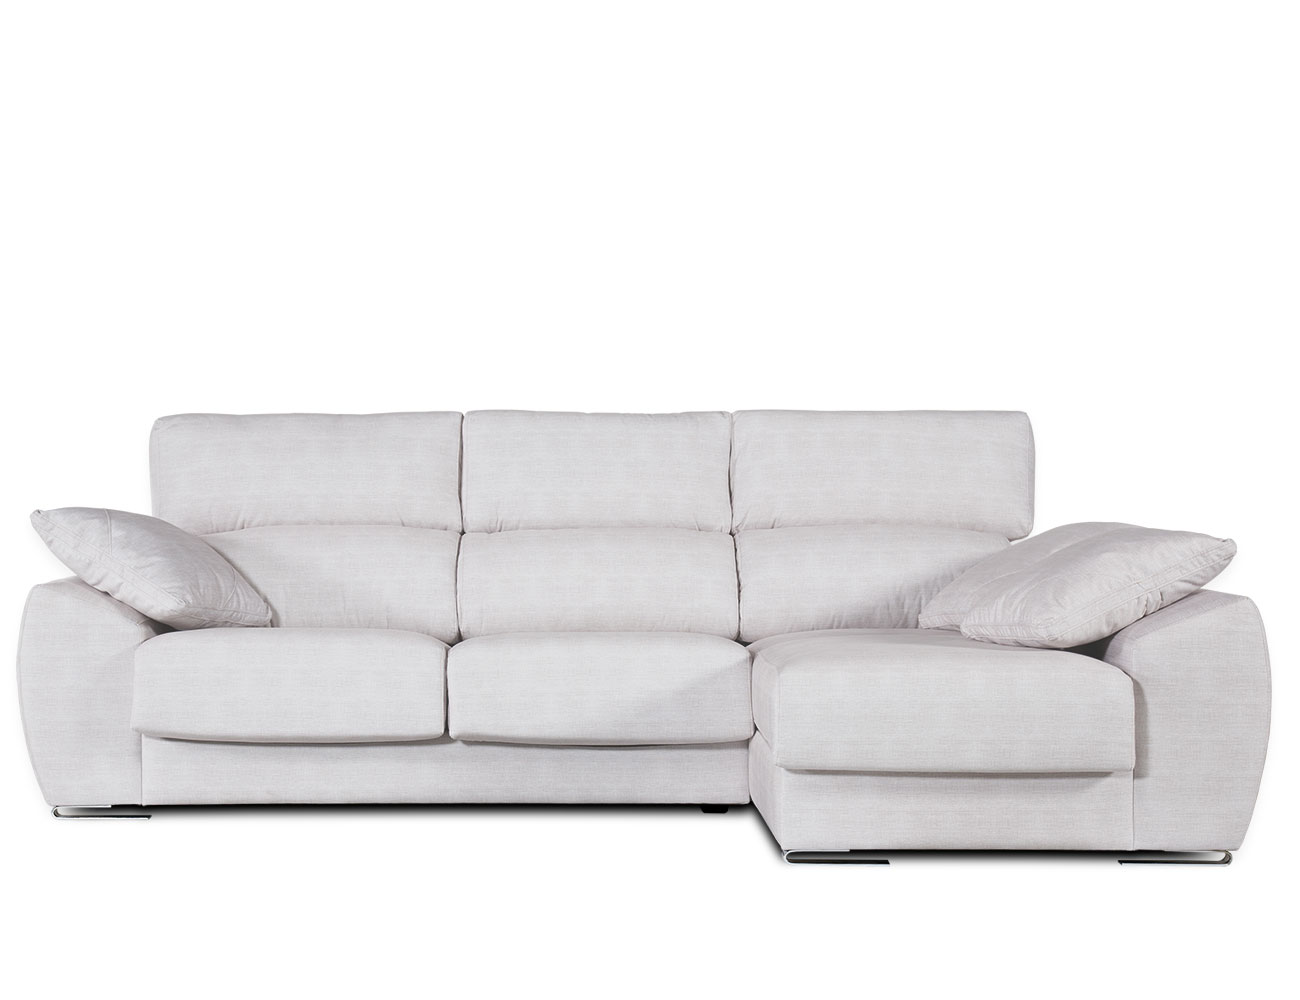 Sofa chaiselongue moderno blanco4